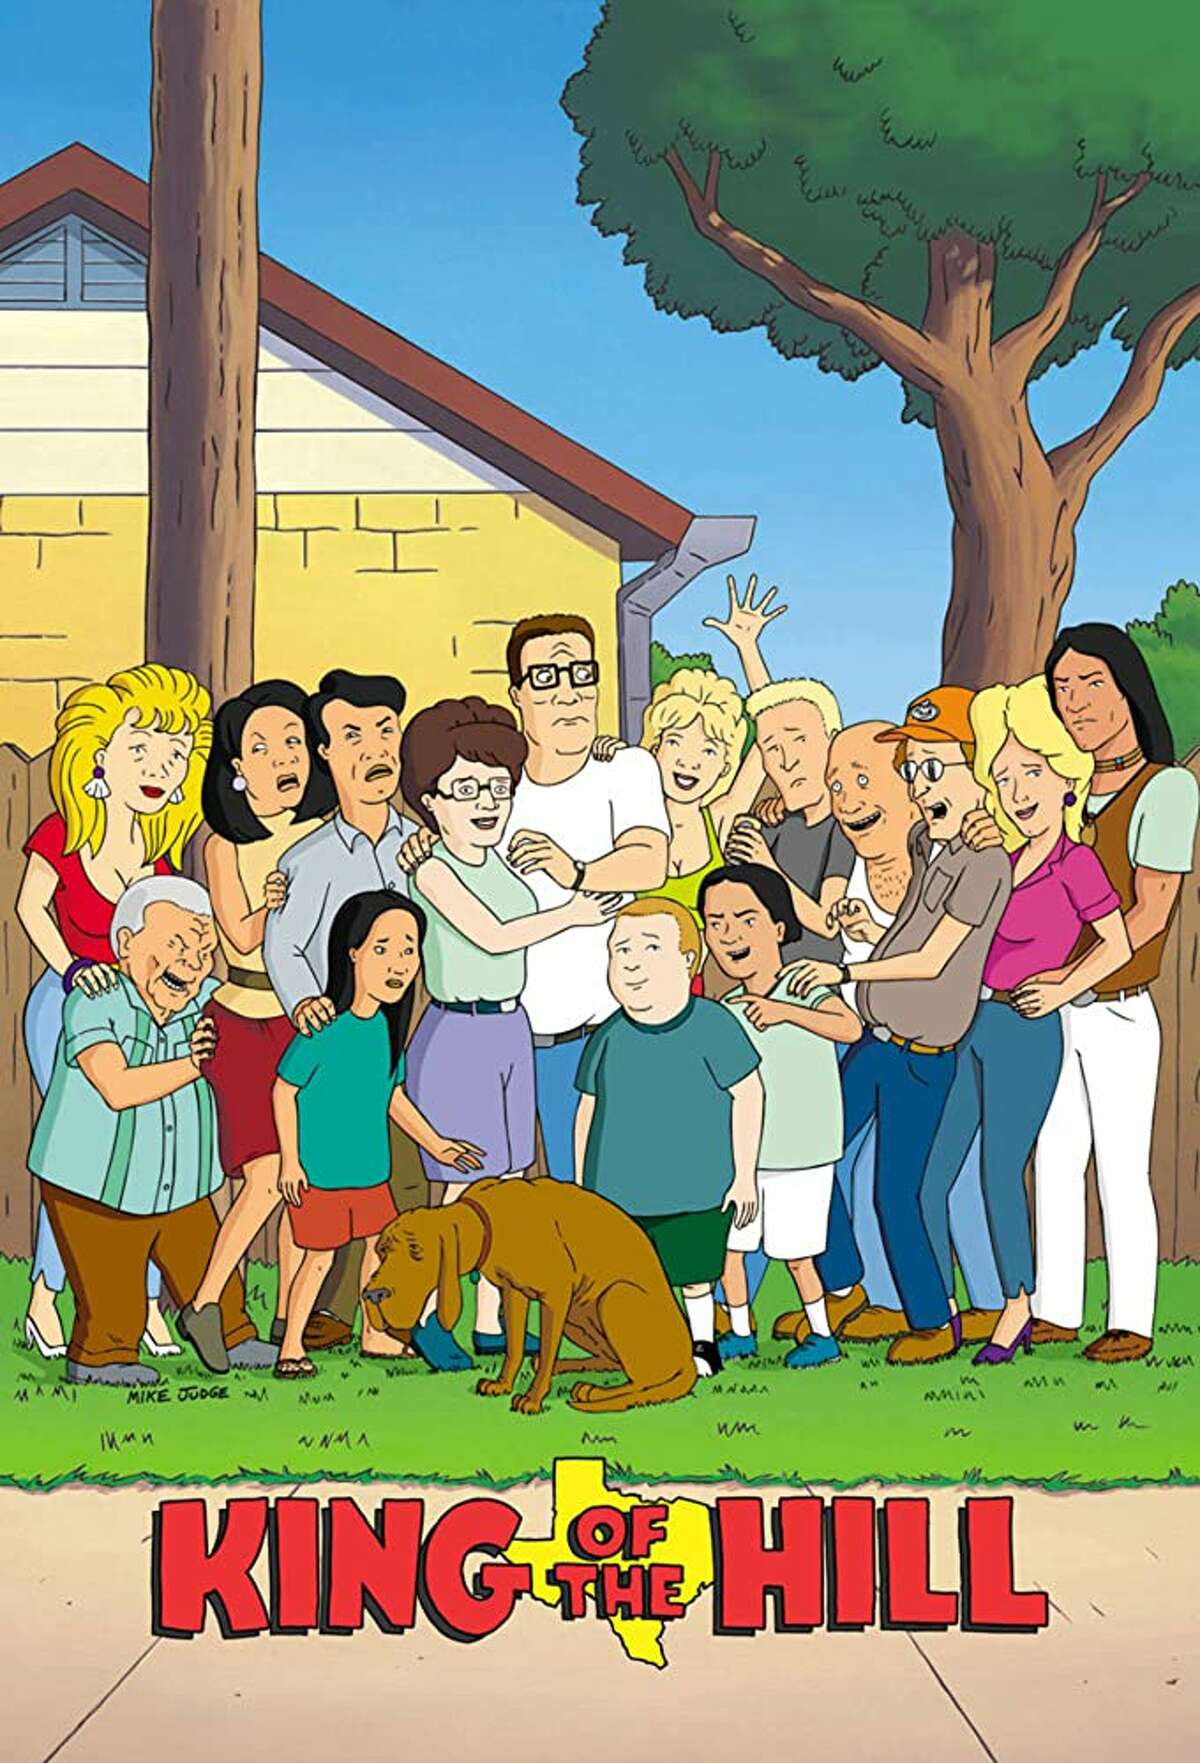 King Of The Hill: That's right, the life and times of father and friend Frank Hill is apparently a pretty accurate description of Texas, even though it takes place in the fictional town of Arlen. It's available on Hulu if you have a subscription.